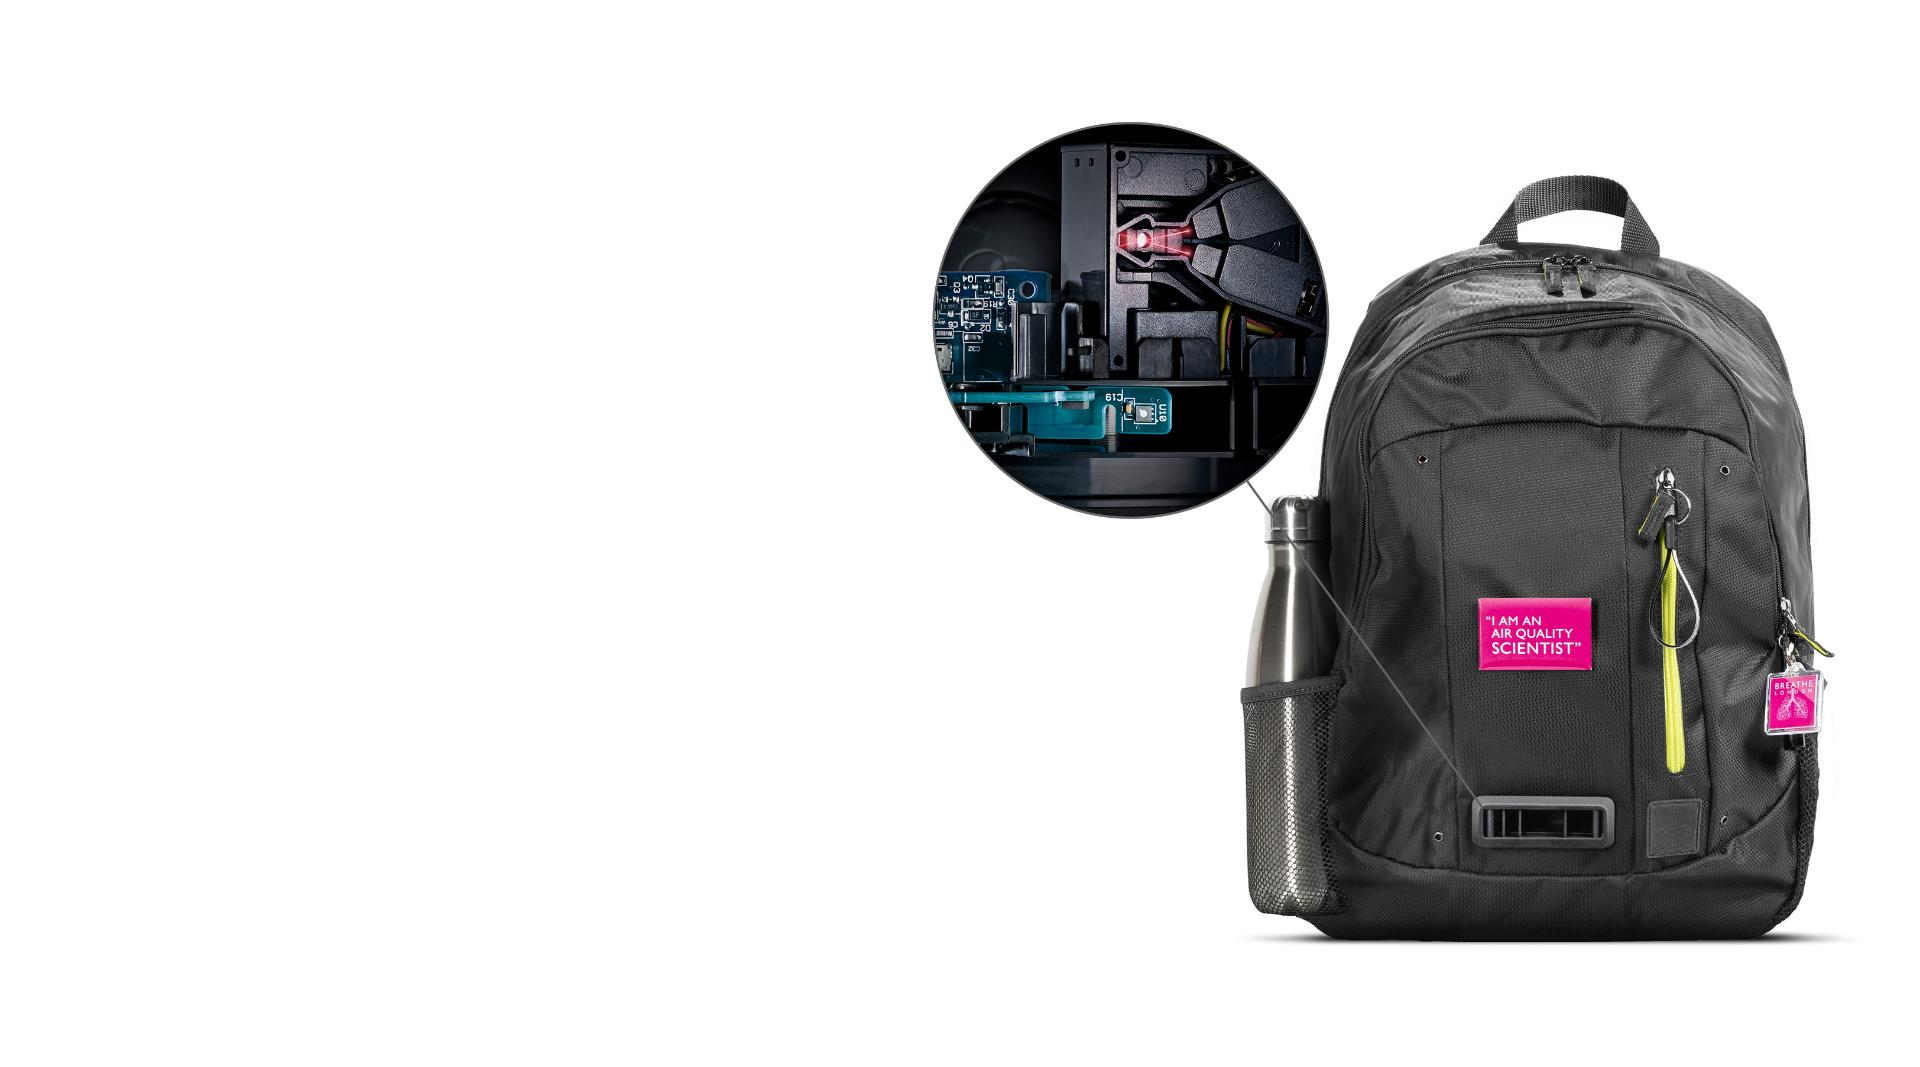 The backpack with an image showing the technology inside it